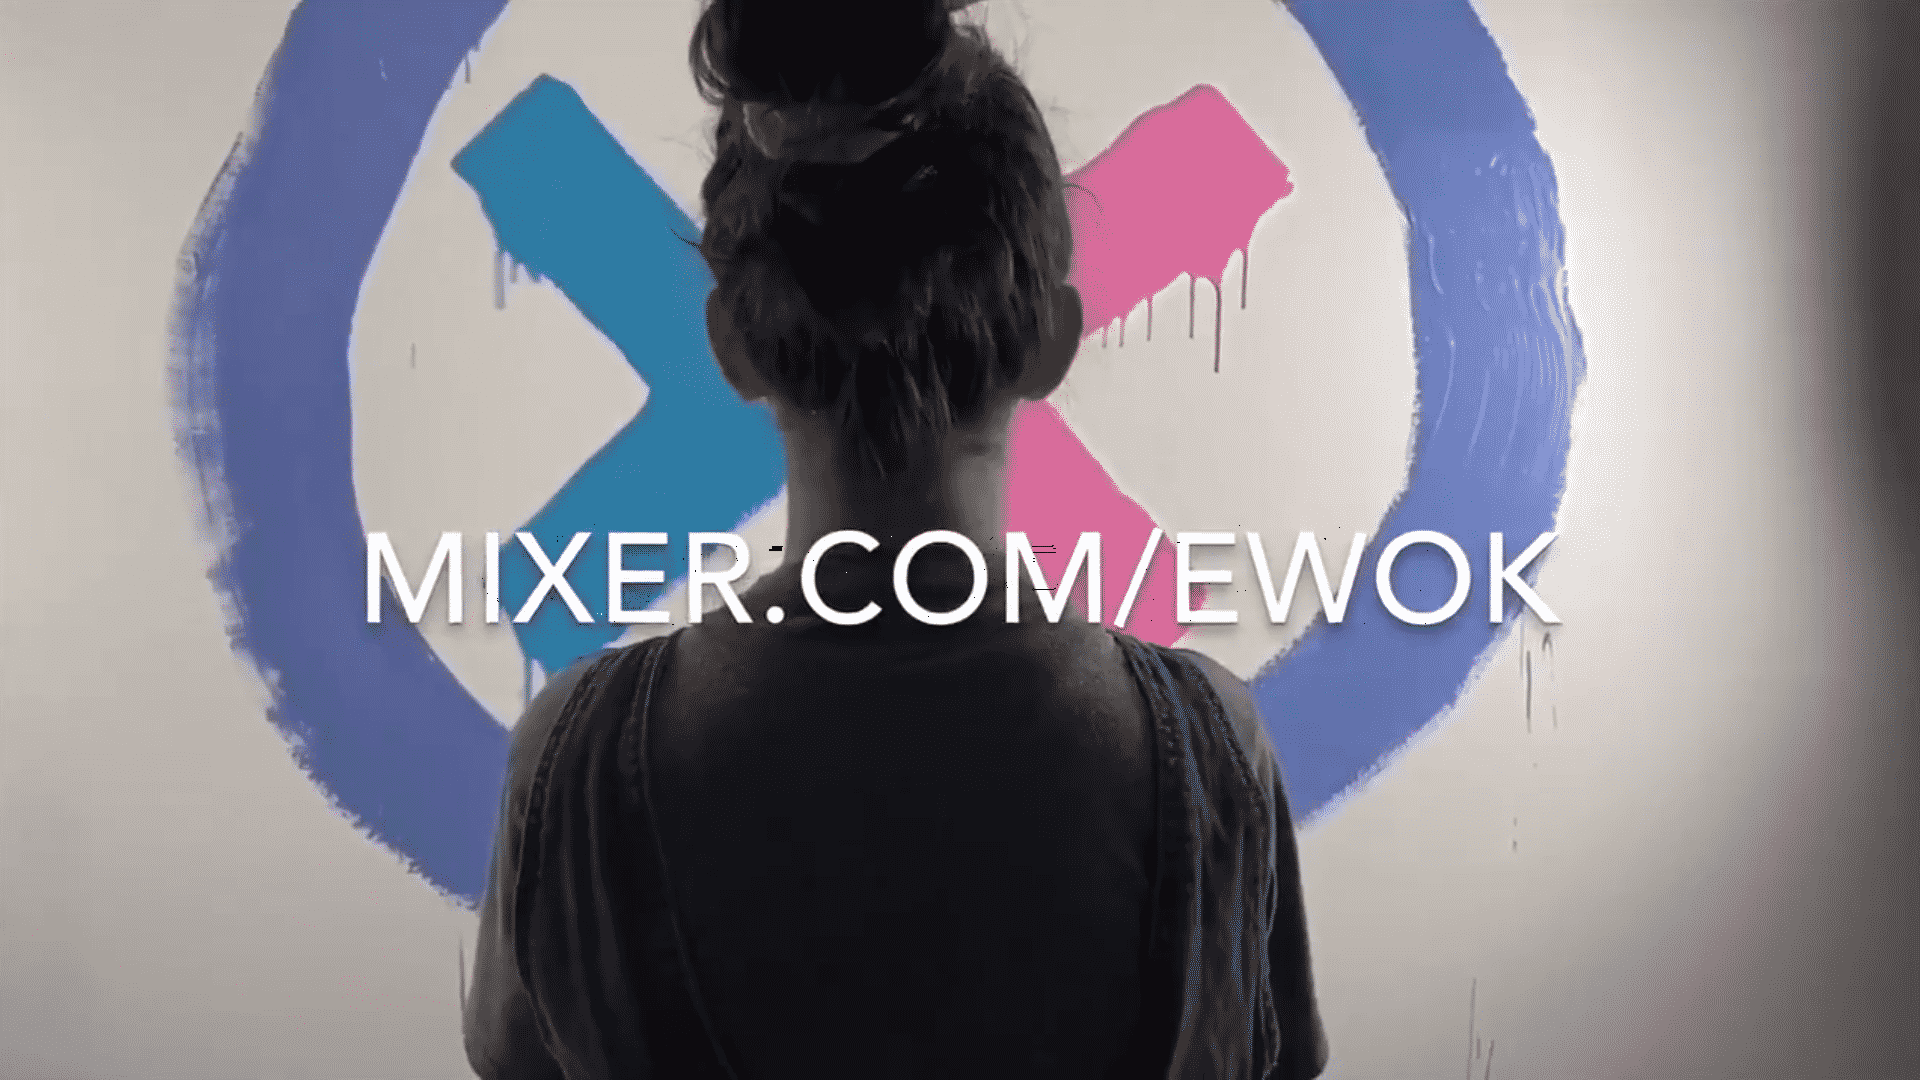 FaZe Member And Fortnite Streamer Ewok Leaves Twitch To Join Mixer